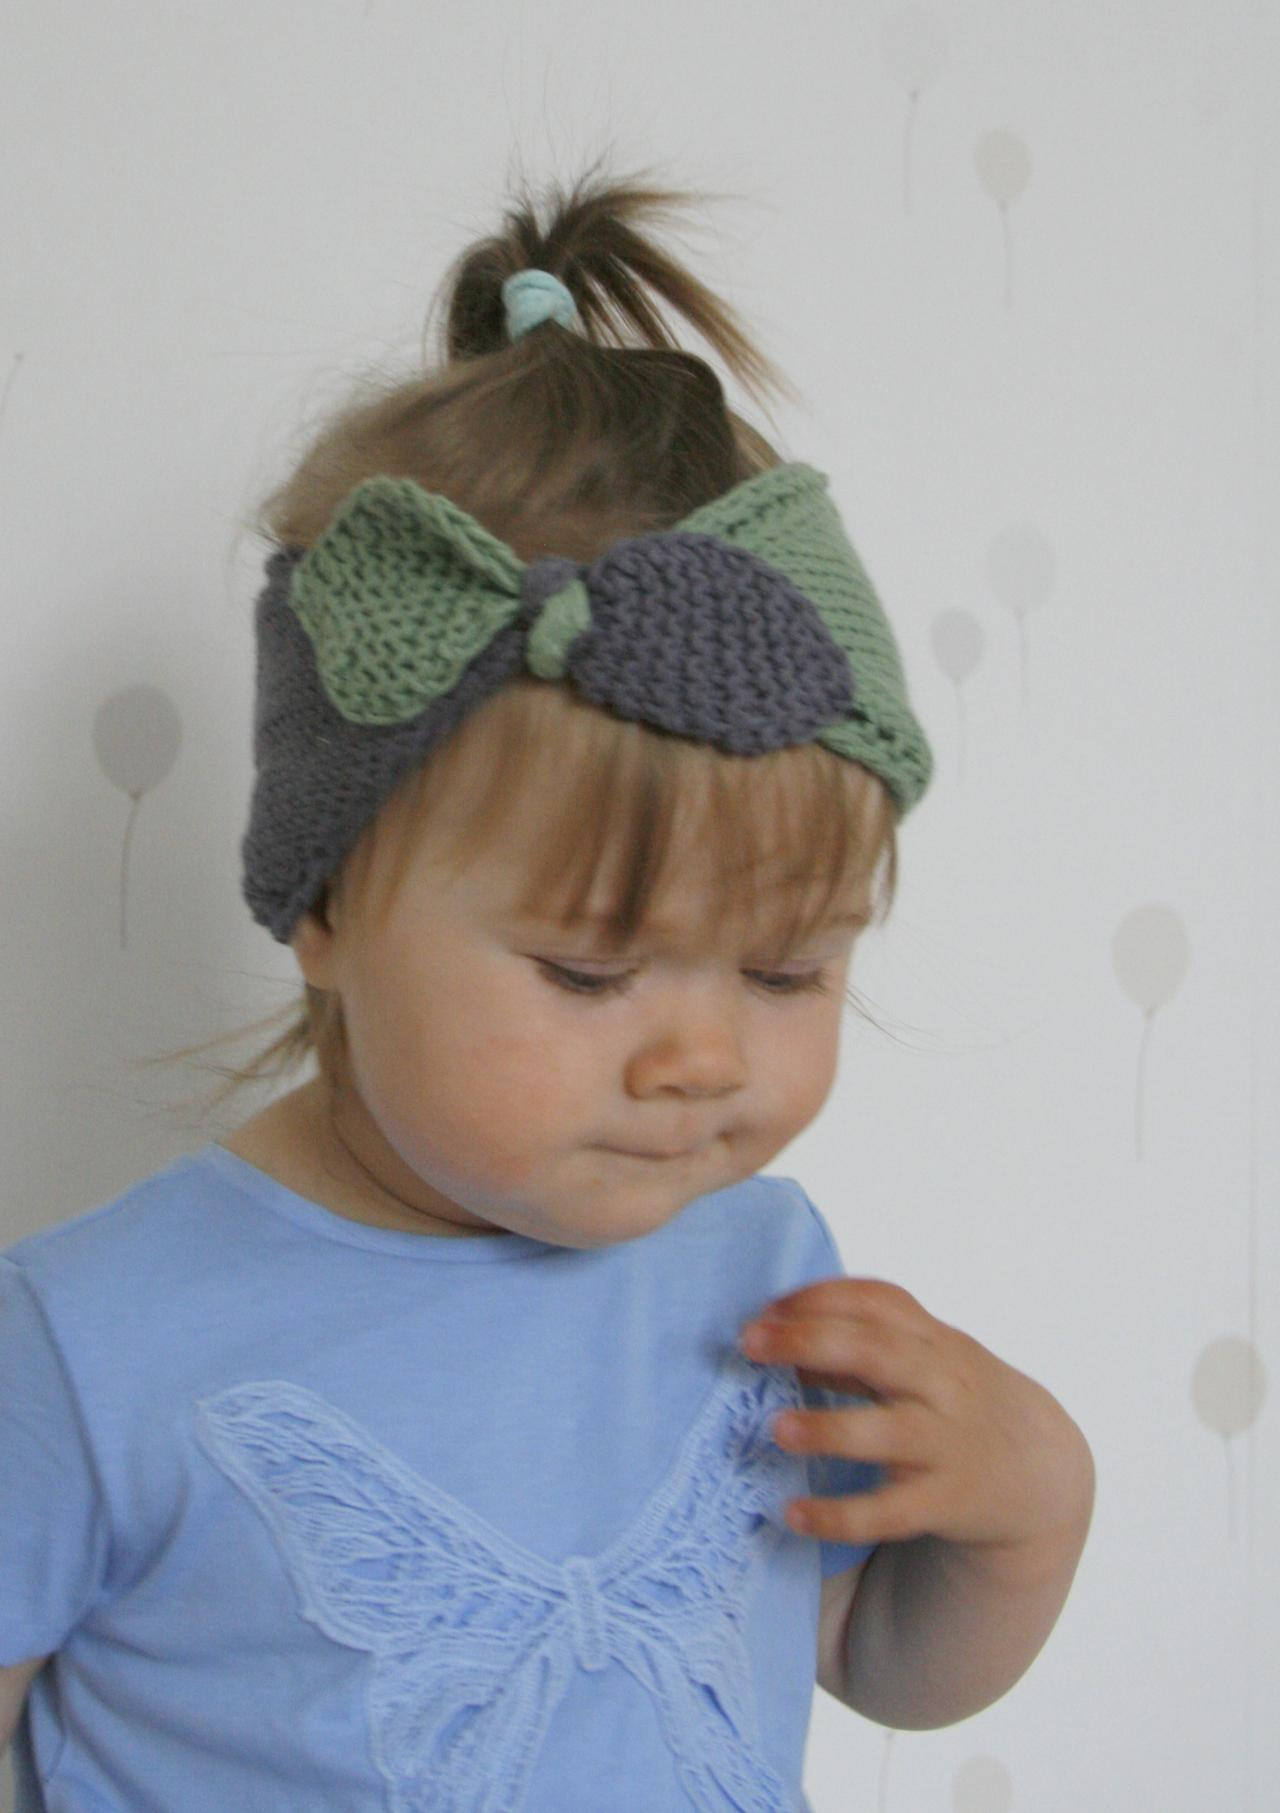 Knitting Pattern For Headband With Bow : KNITTING PATTERN Bow Headband Headwrap Rita on Luulla